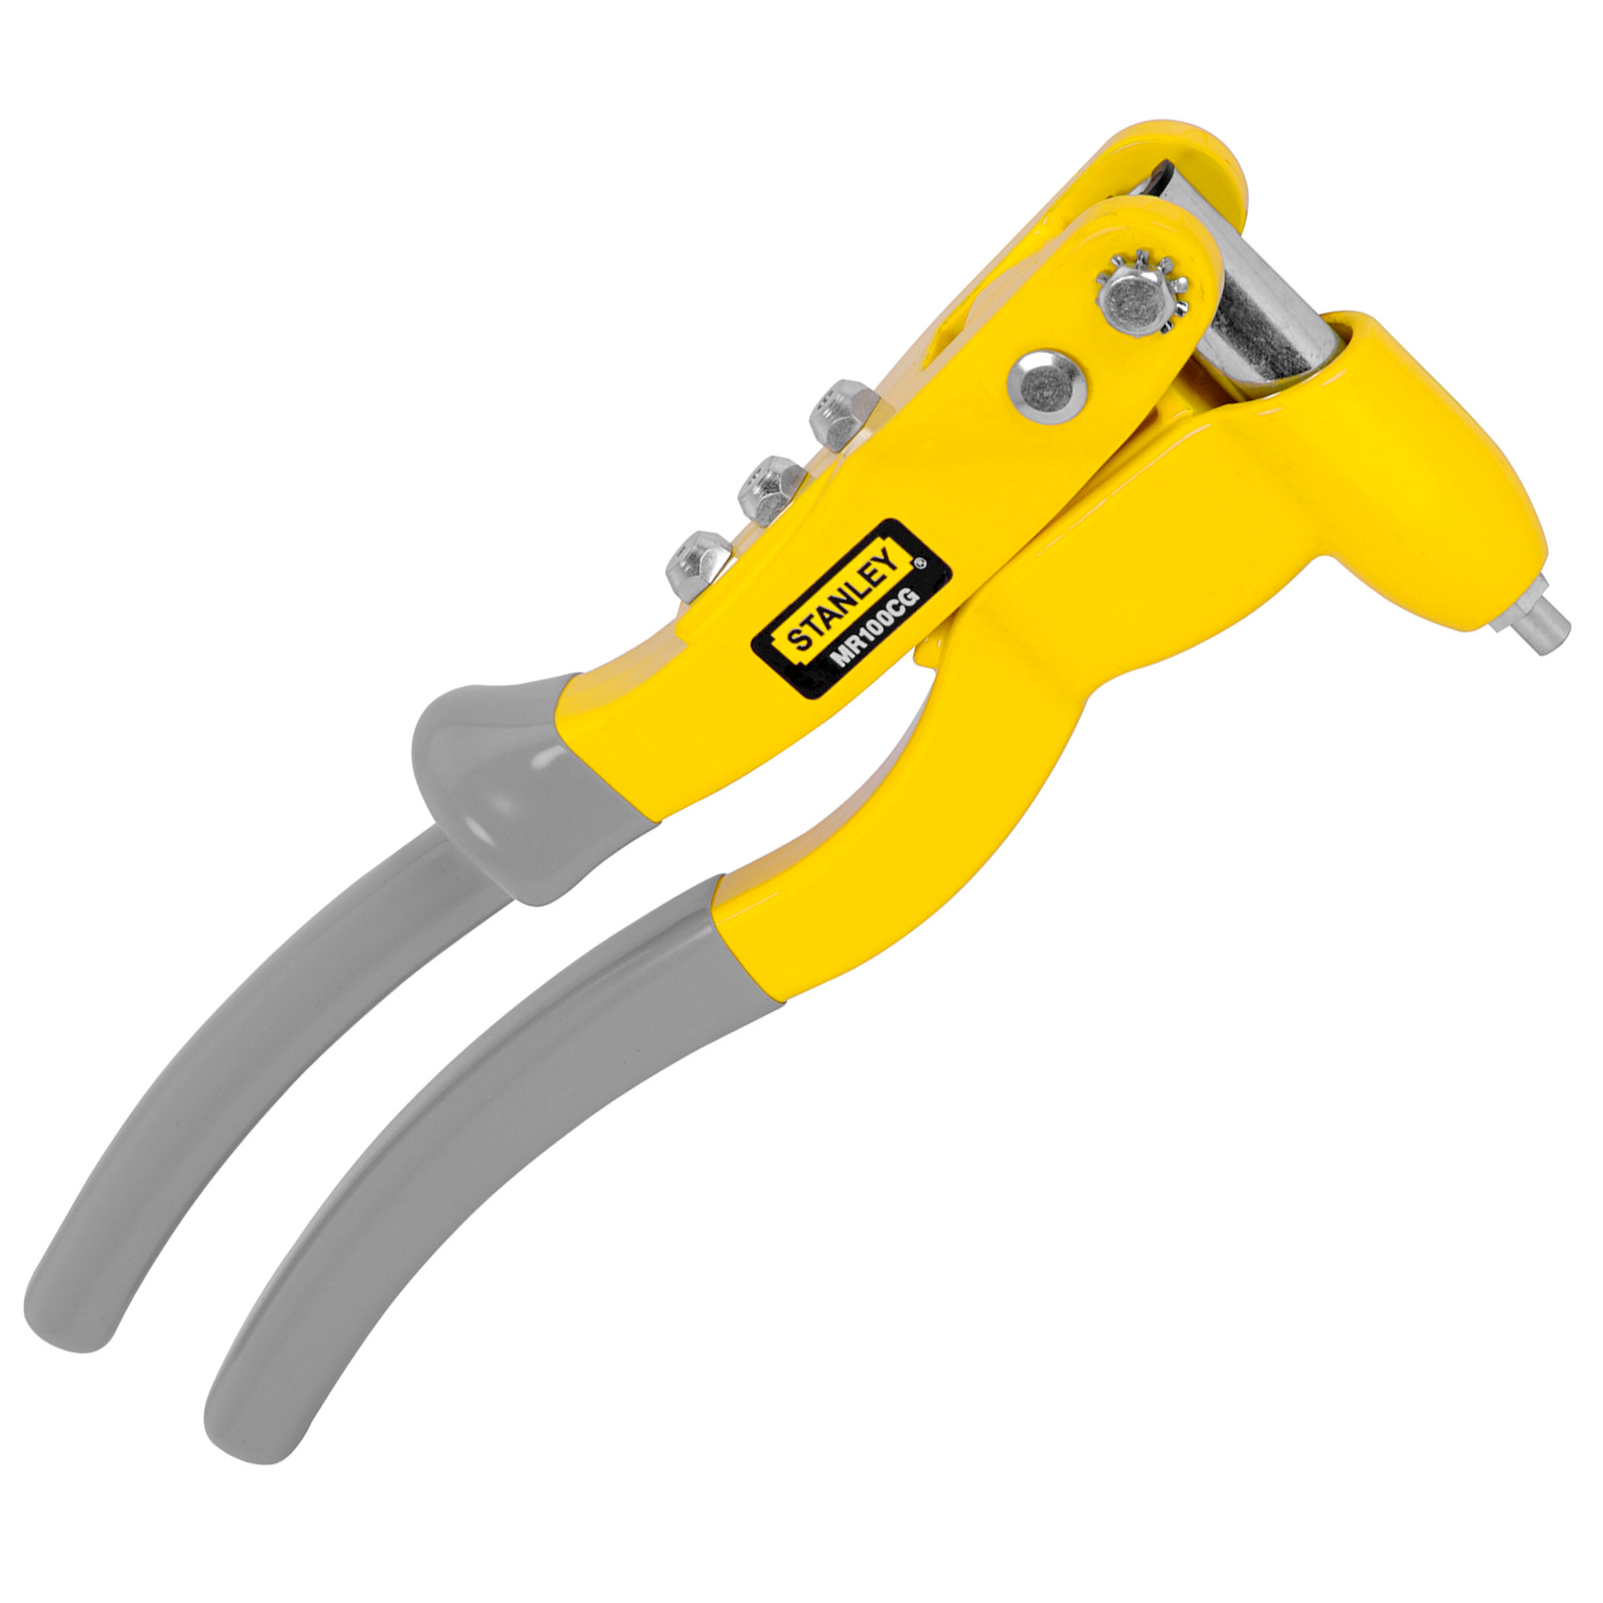 Stanley Hand Tools MR100CG Contractor Grade Riveter MR100CG